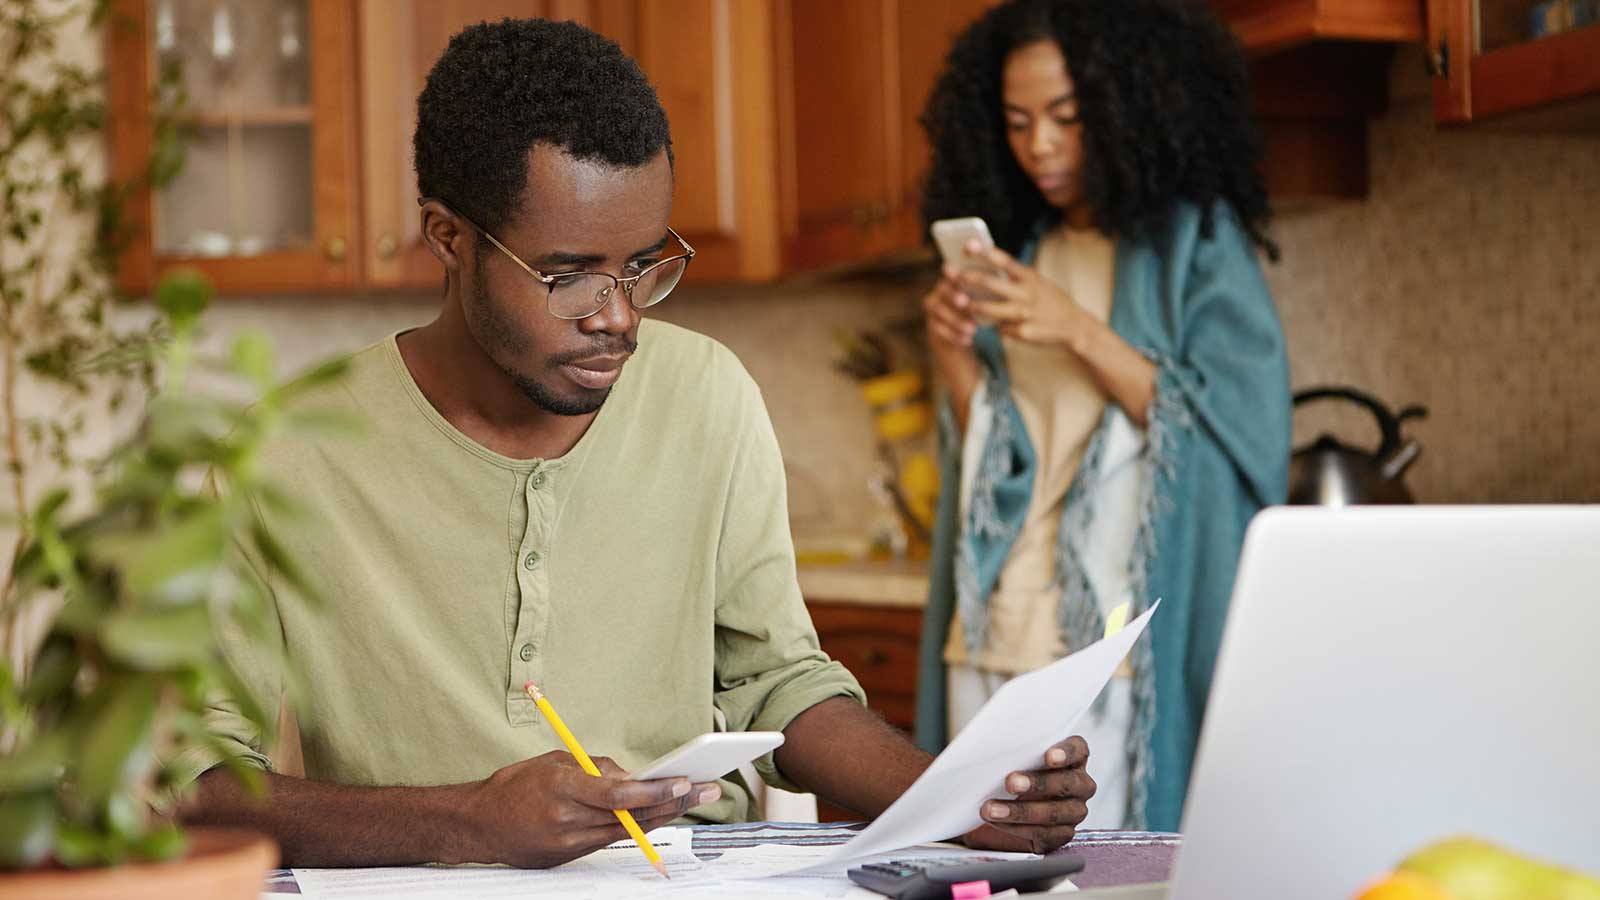 A man sitting at a kitchen table looking at a piece of paper, and holding a pencil and smartphone, and a woman in the background in pajamas looking at her phone.